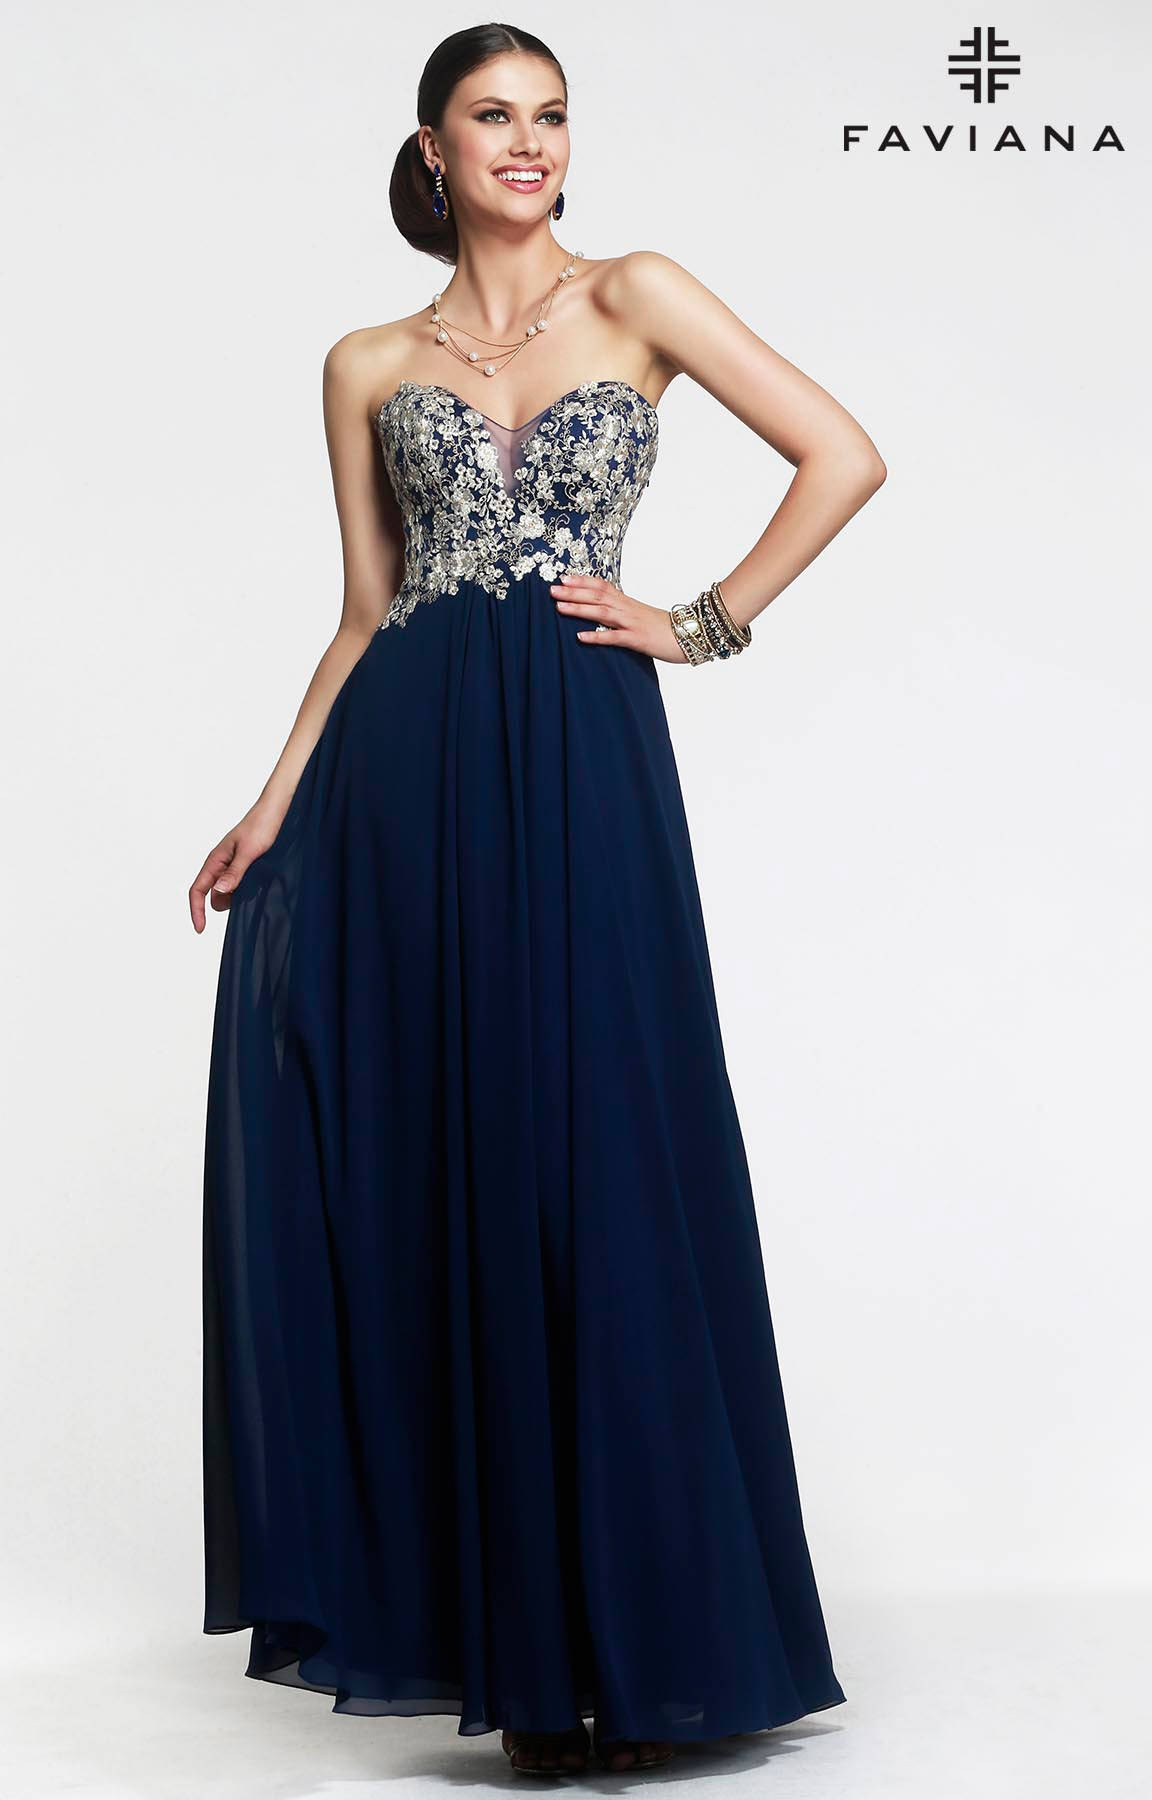 Faviana S7325 - The Only Exception Dress Prom Dress